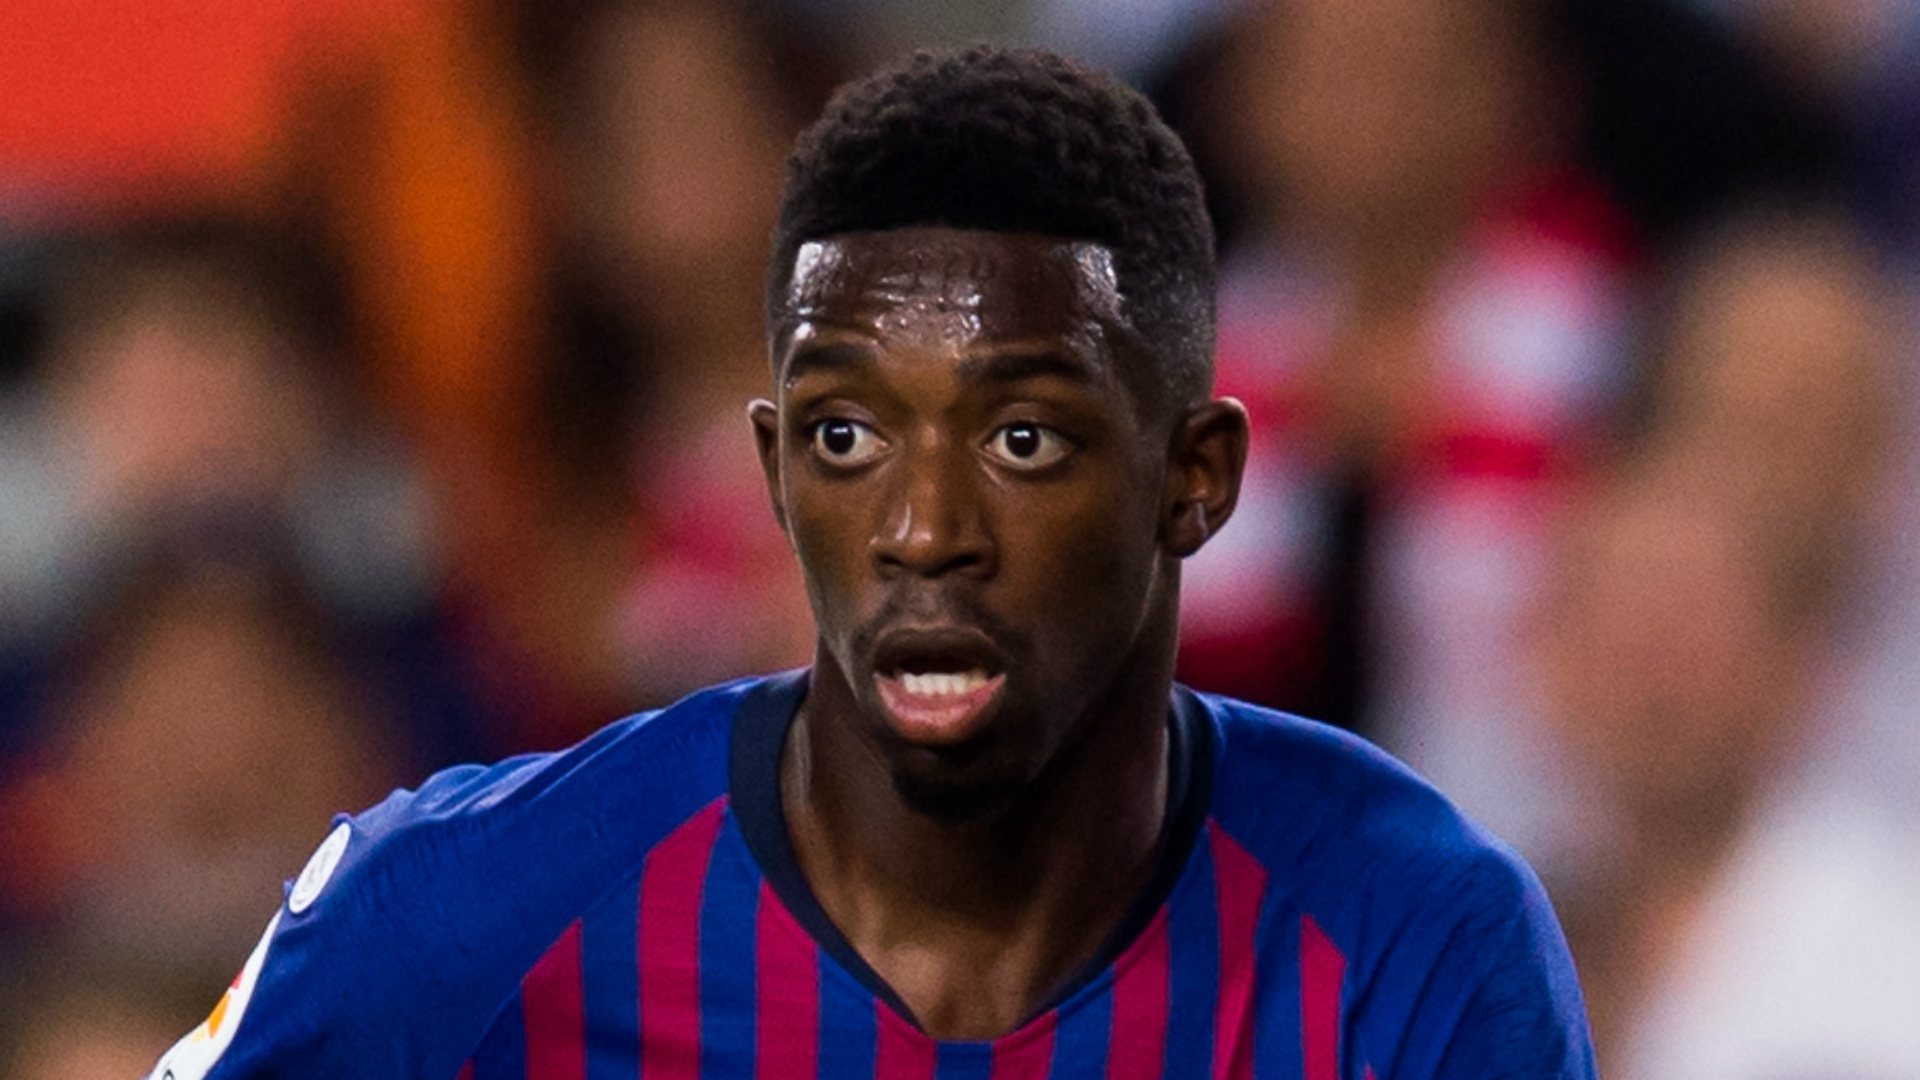 Barcelona 'face paying full £131m fee for Ousmane Dembele if they sell the winger before the end of his contract' - Bóng Đá